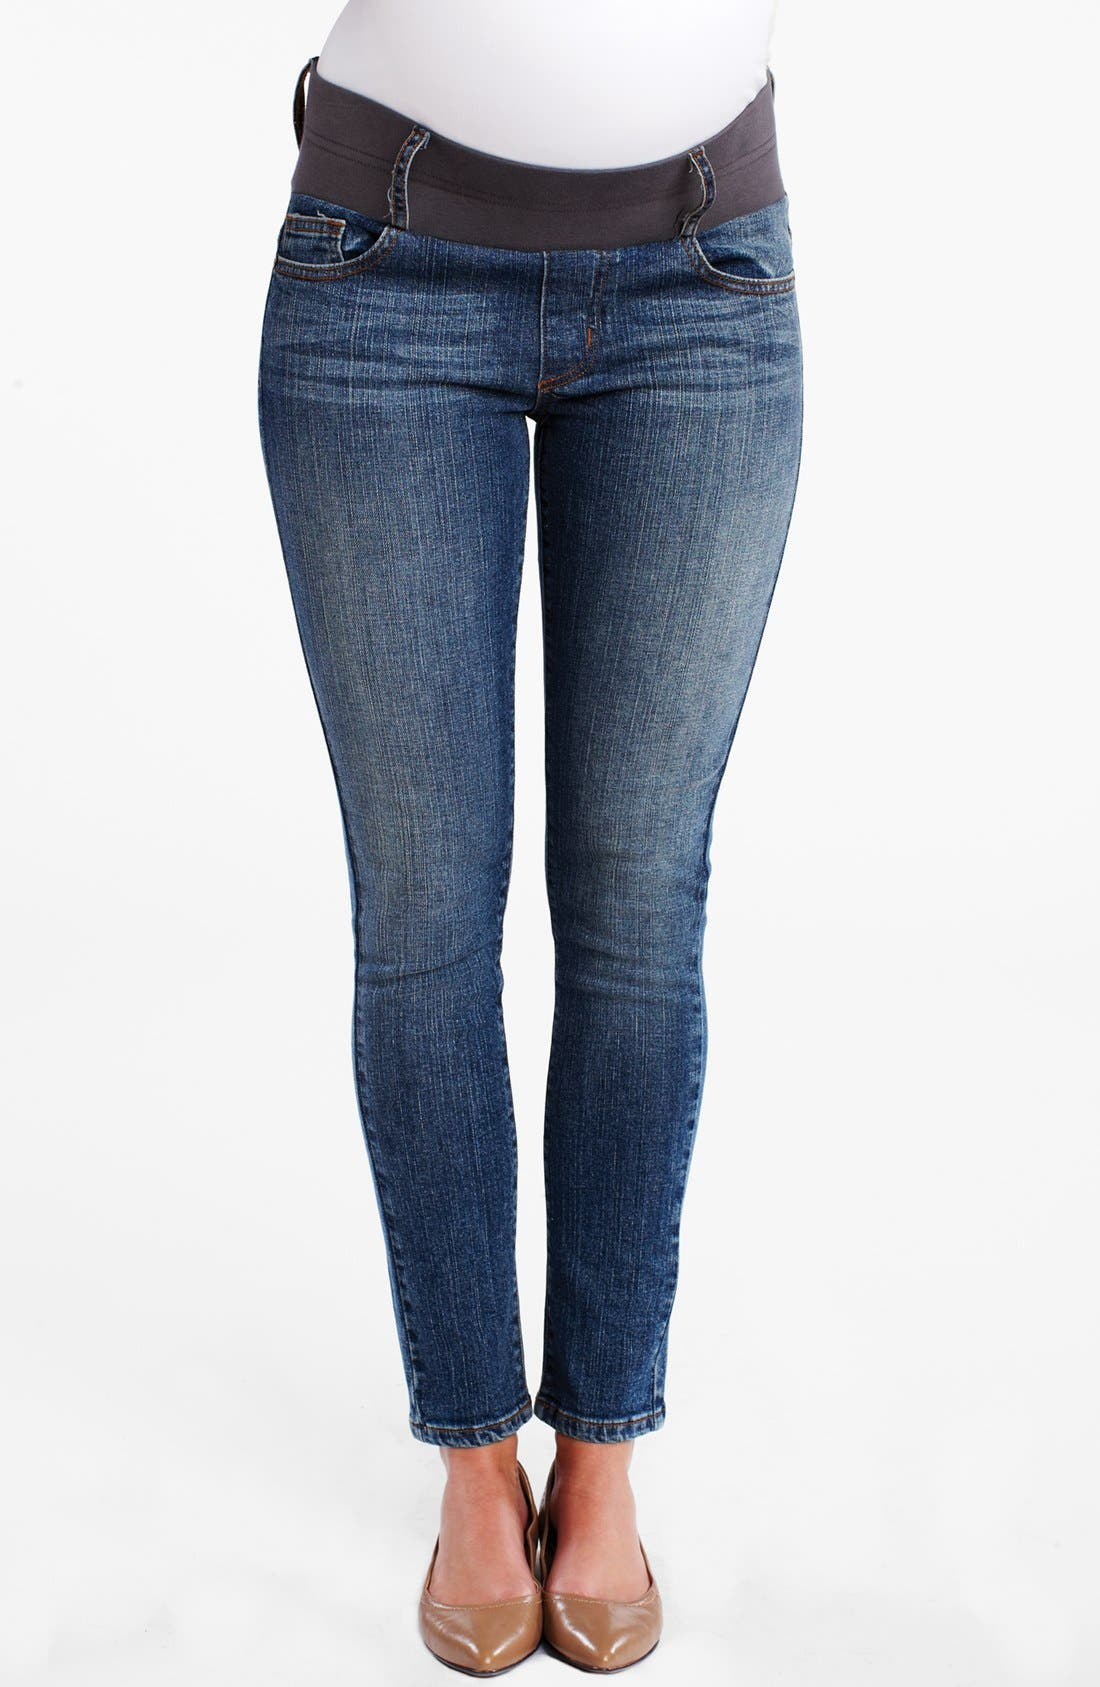 Main Image - Maternal America Maternity Ankle Skinny Jeans